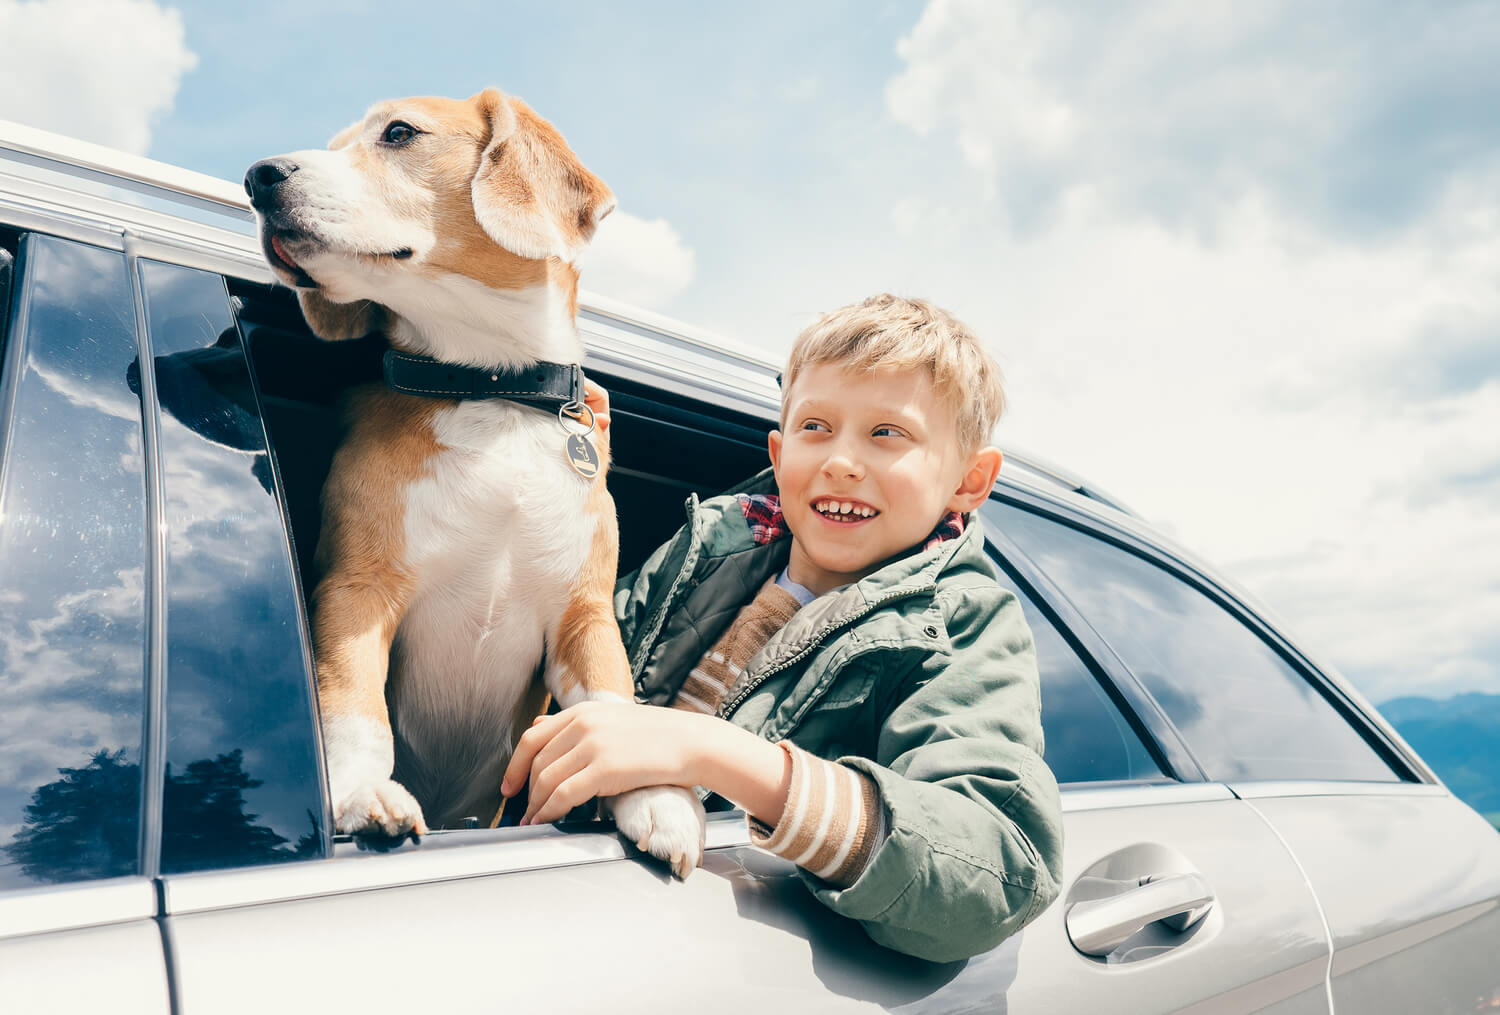 All You Need To Know About Pet Insurance Plans With Direct Claims